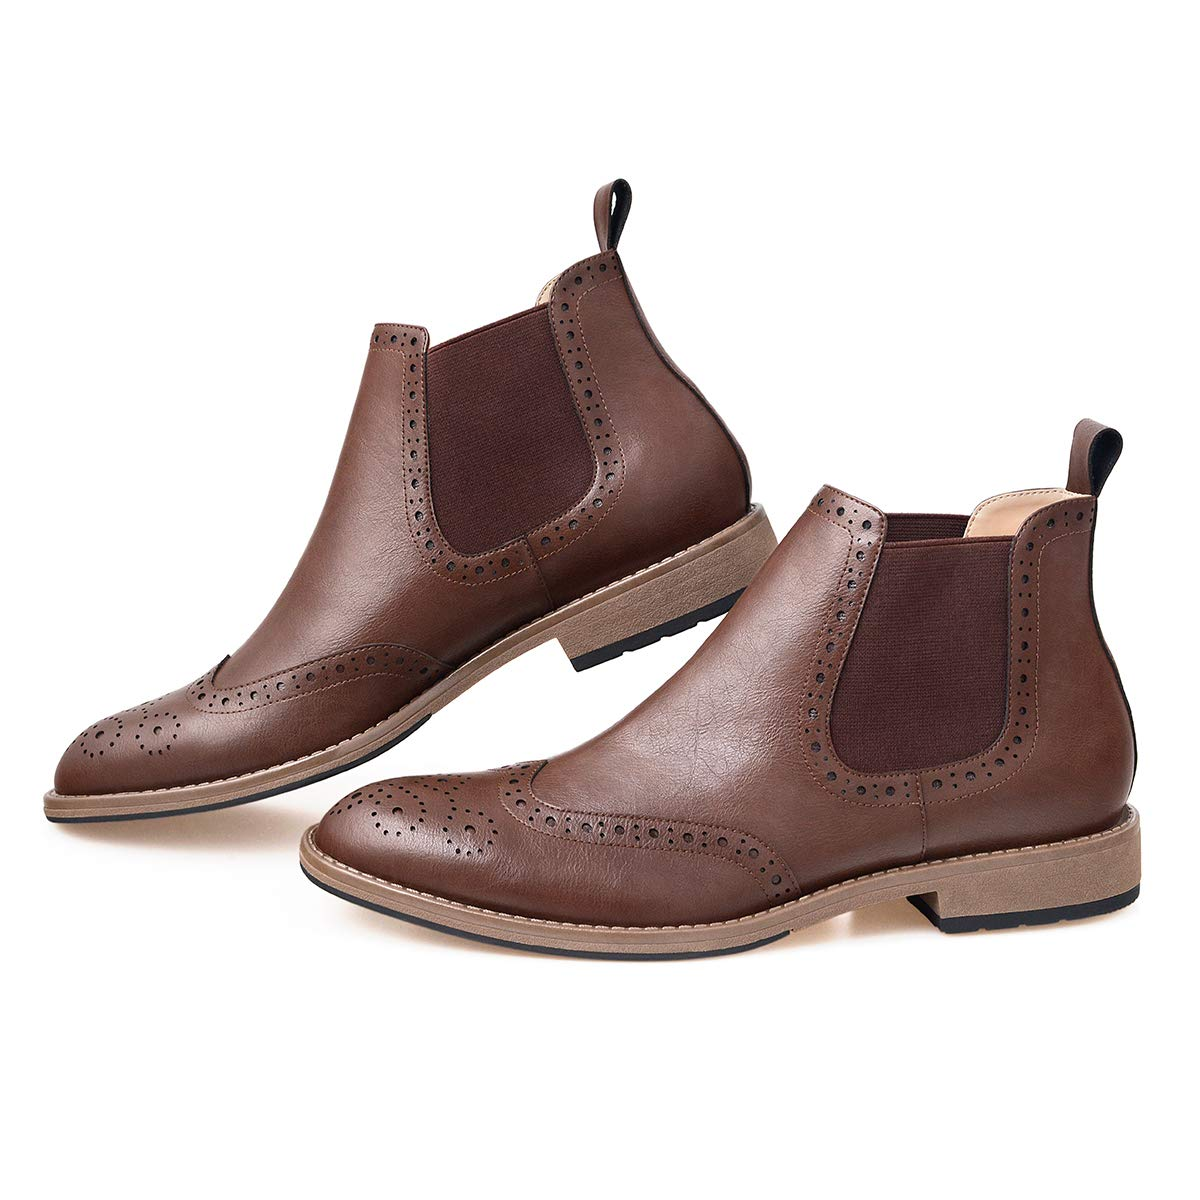 ff7a8c12b71b GM GOLAIMAN Men s Chelsea Boots Wingtip Brogue Full Brogue Boots Ankle Dress  Boots Slip On Brown 7